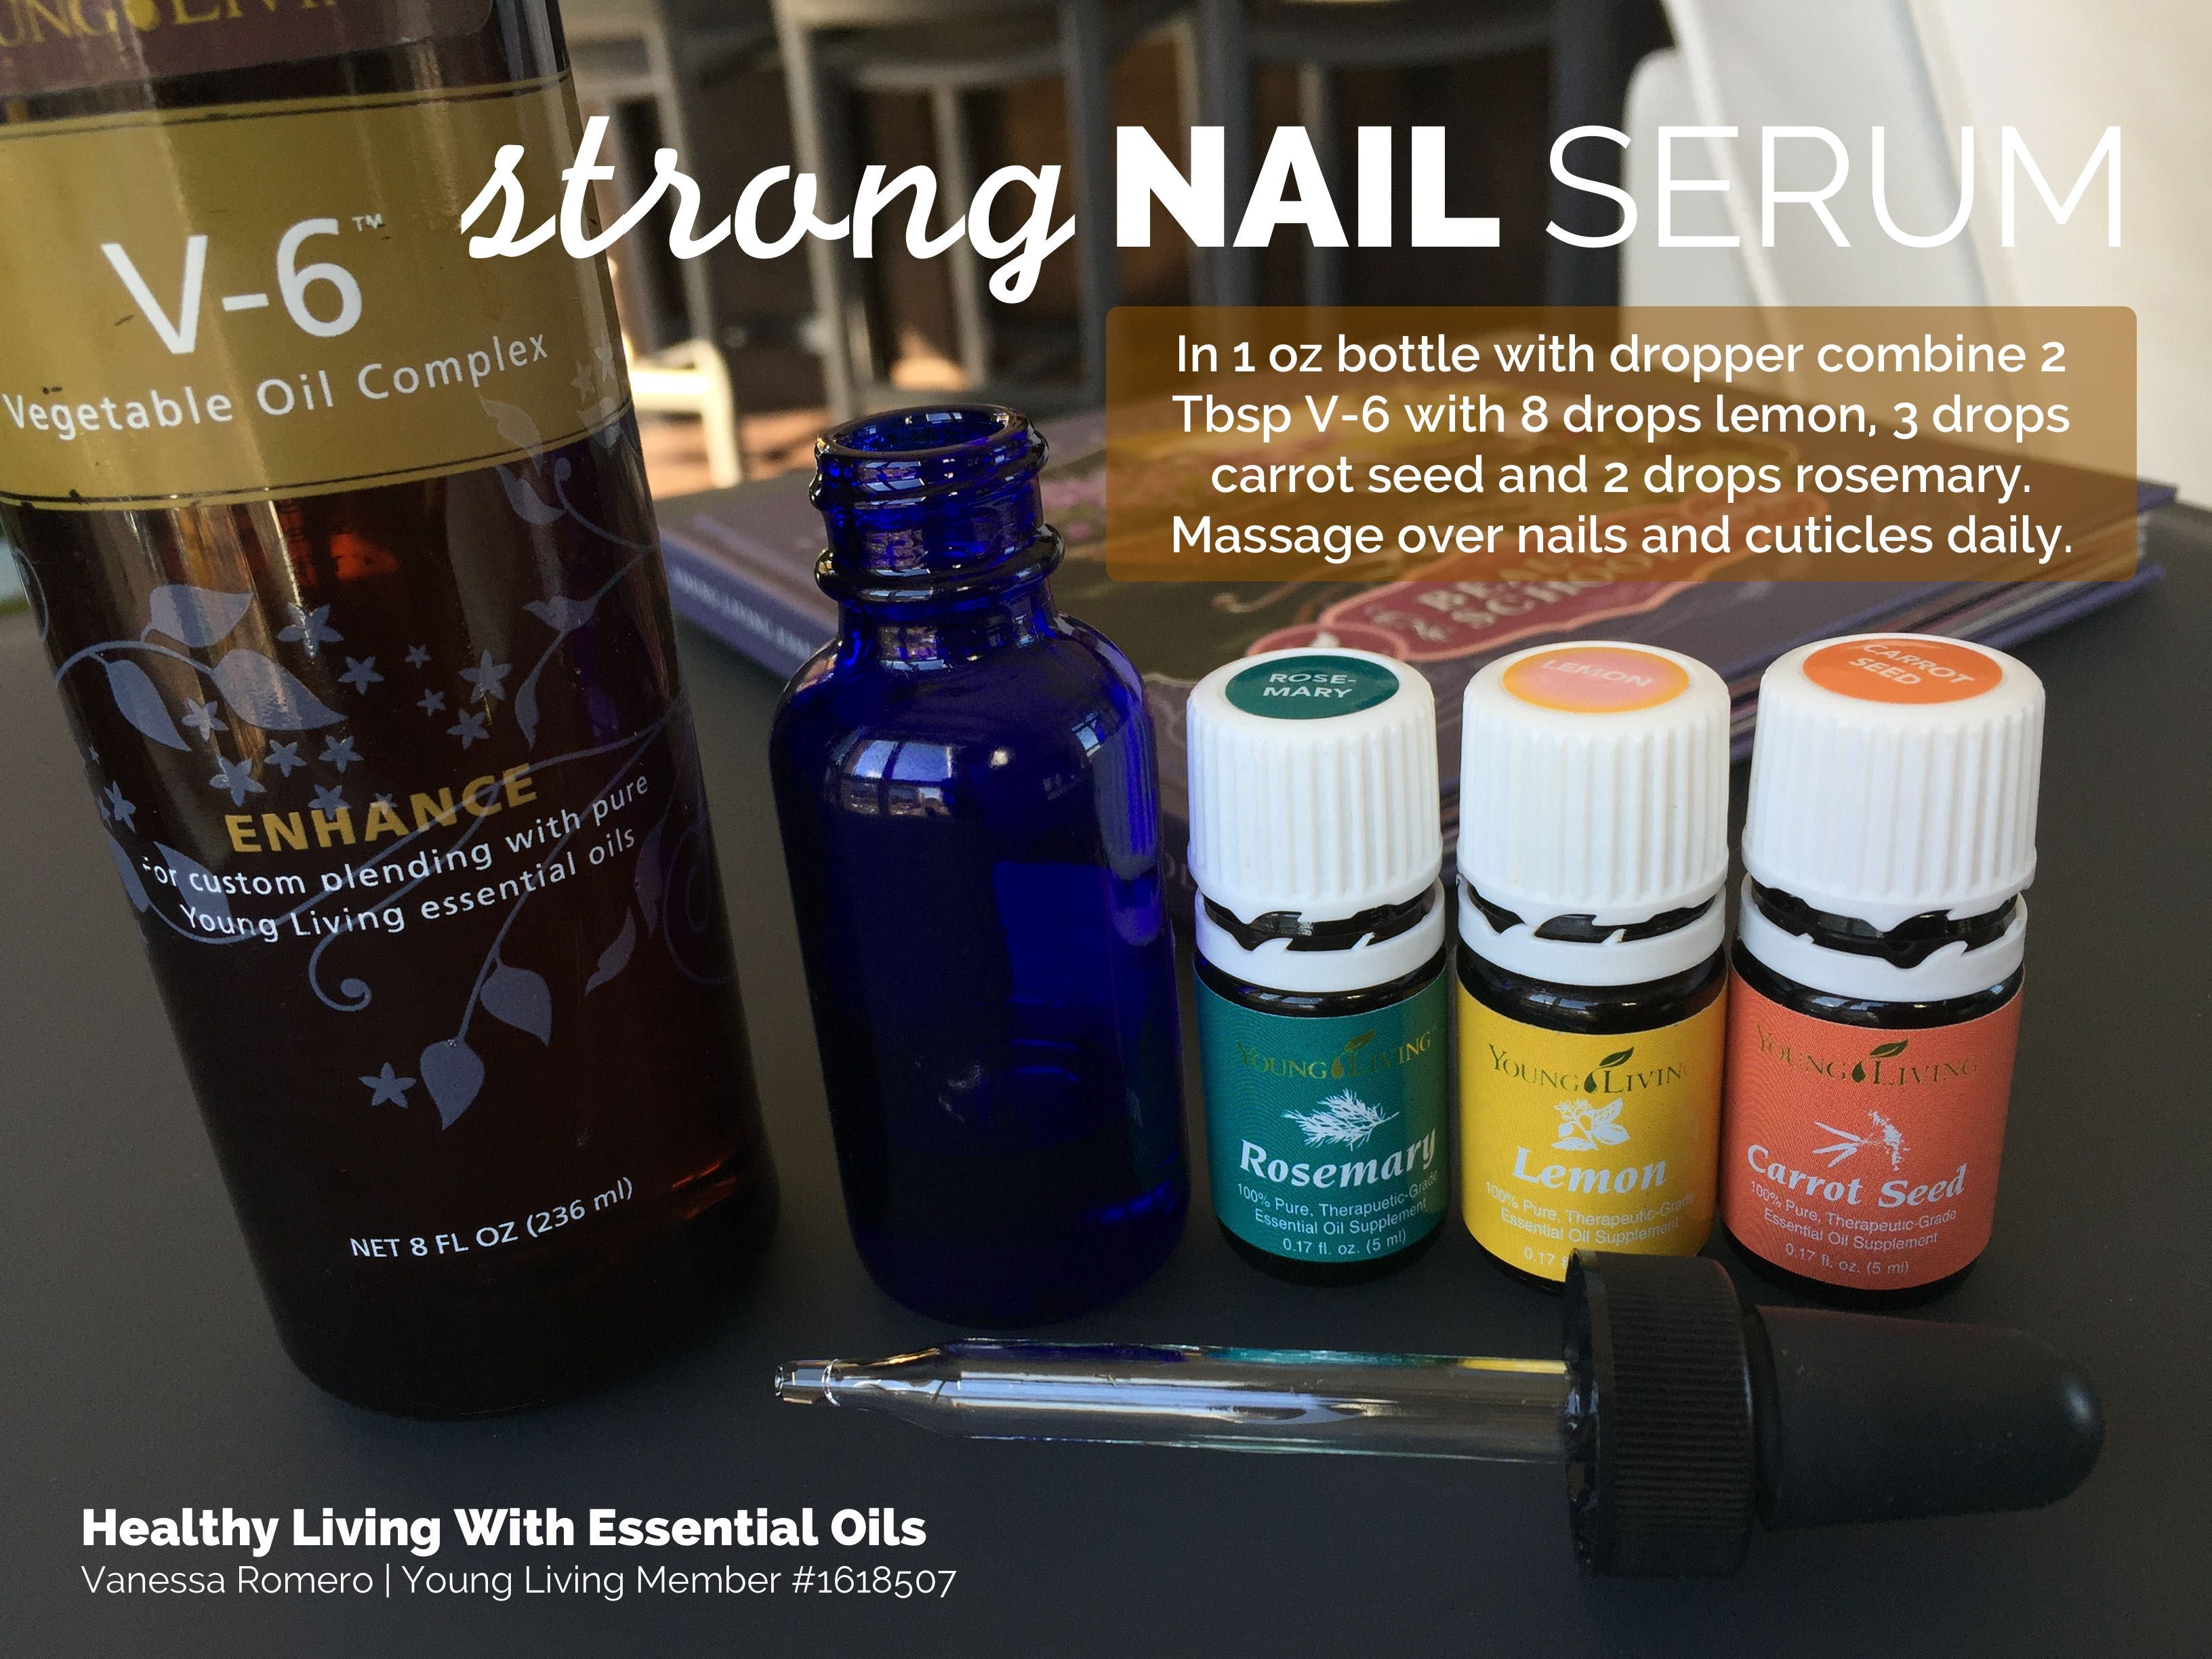 Strong Nail Serum | healthylivinghowto.com - YLEO Beauty DIY | Pinterest